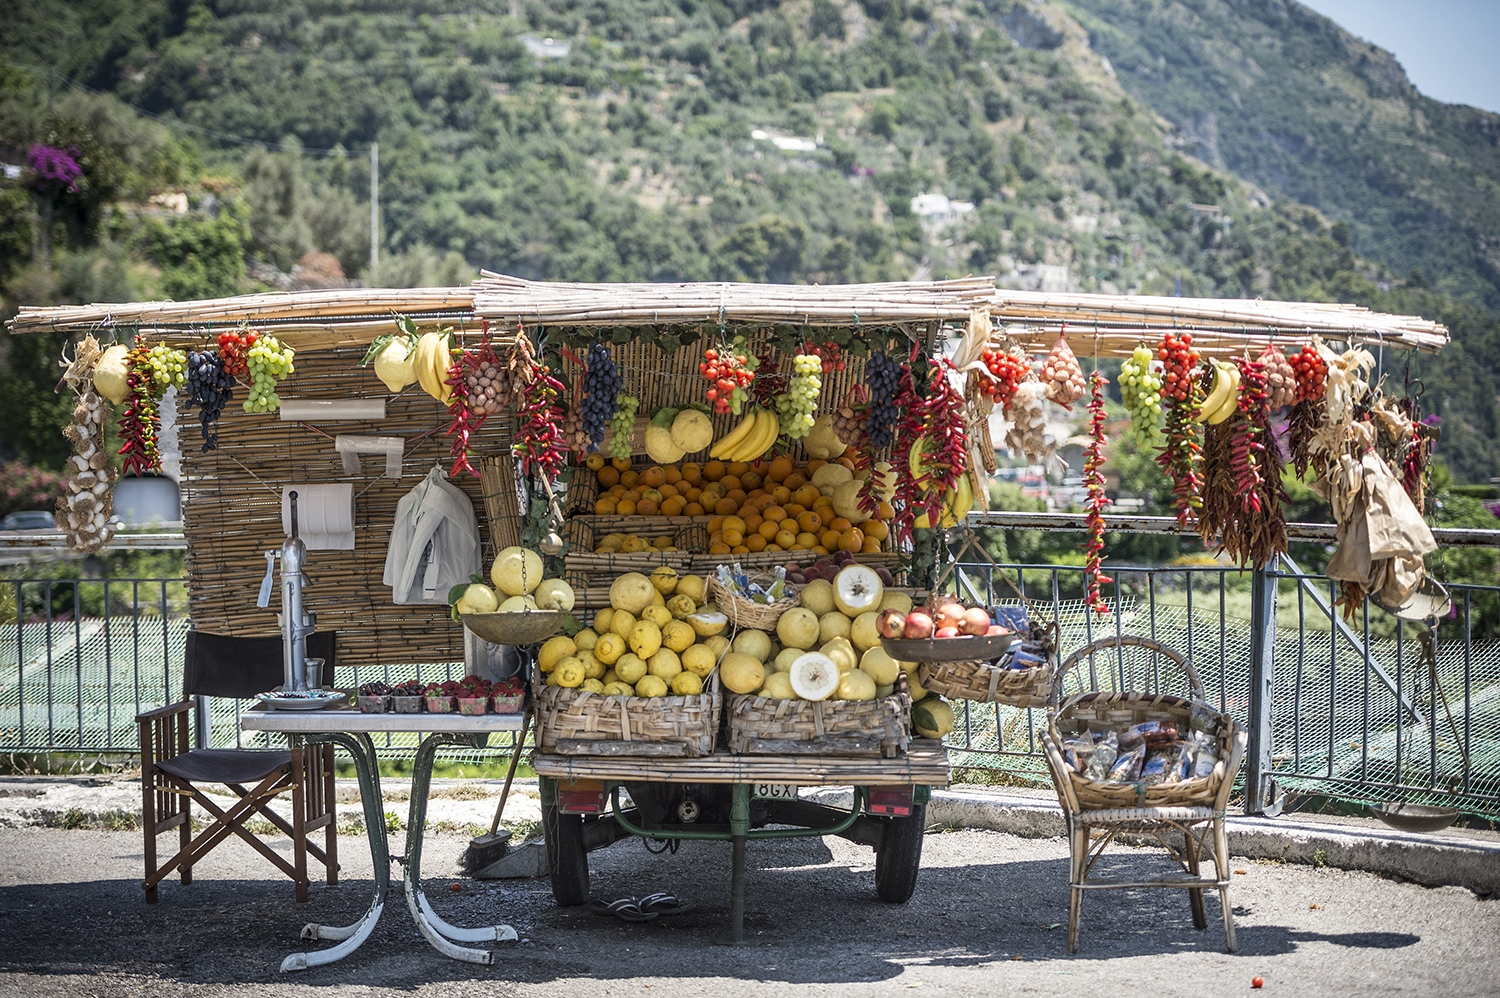 Near Positano: a typical Ape selling fruits and greens